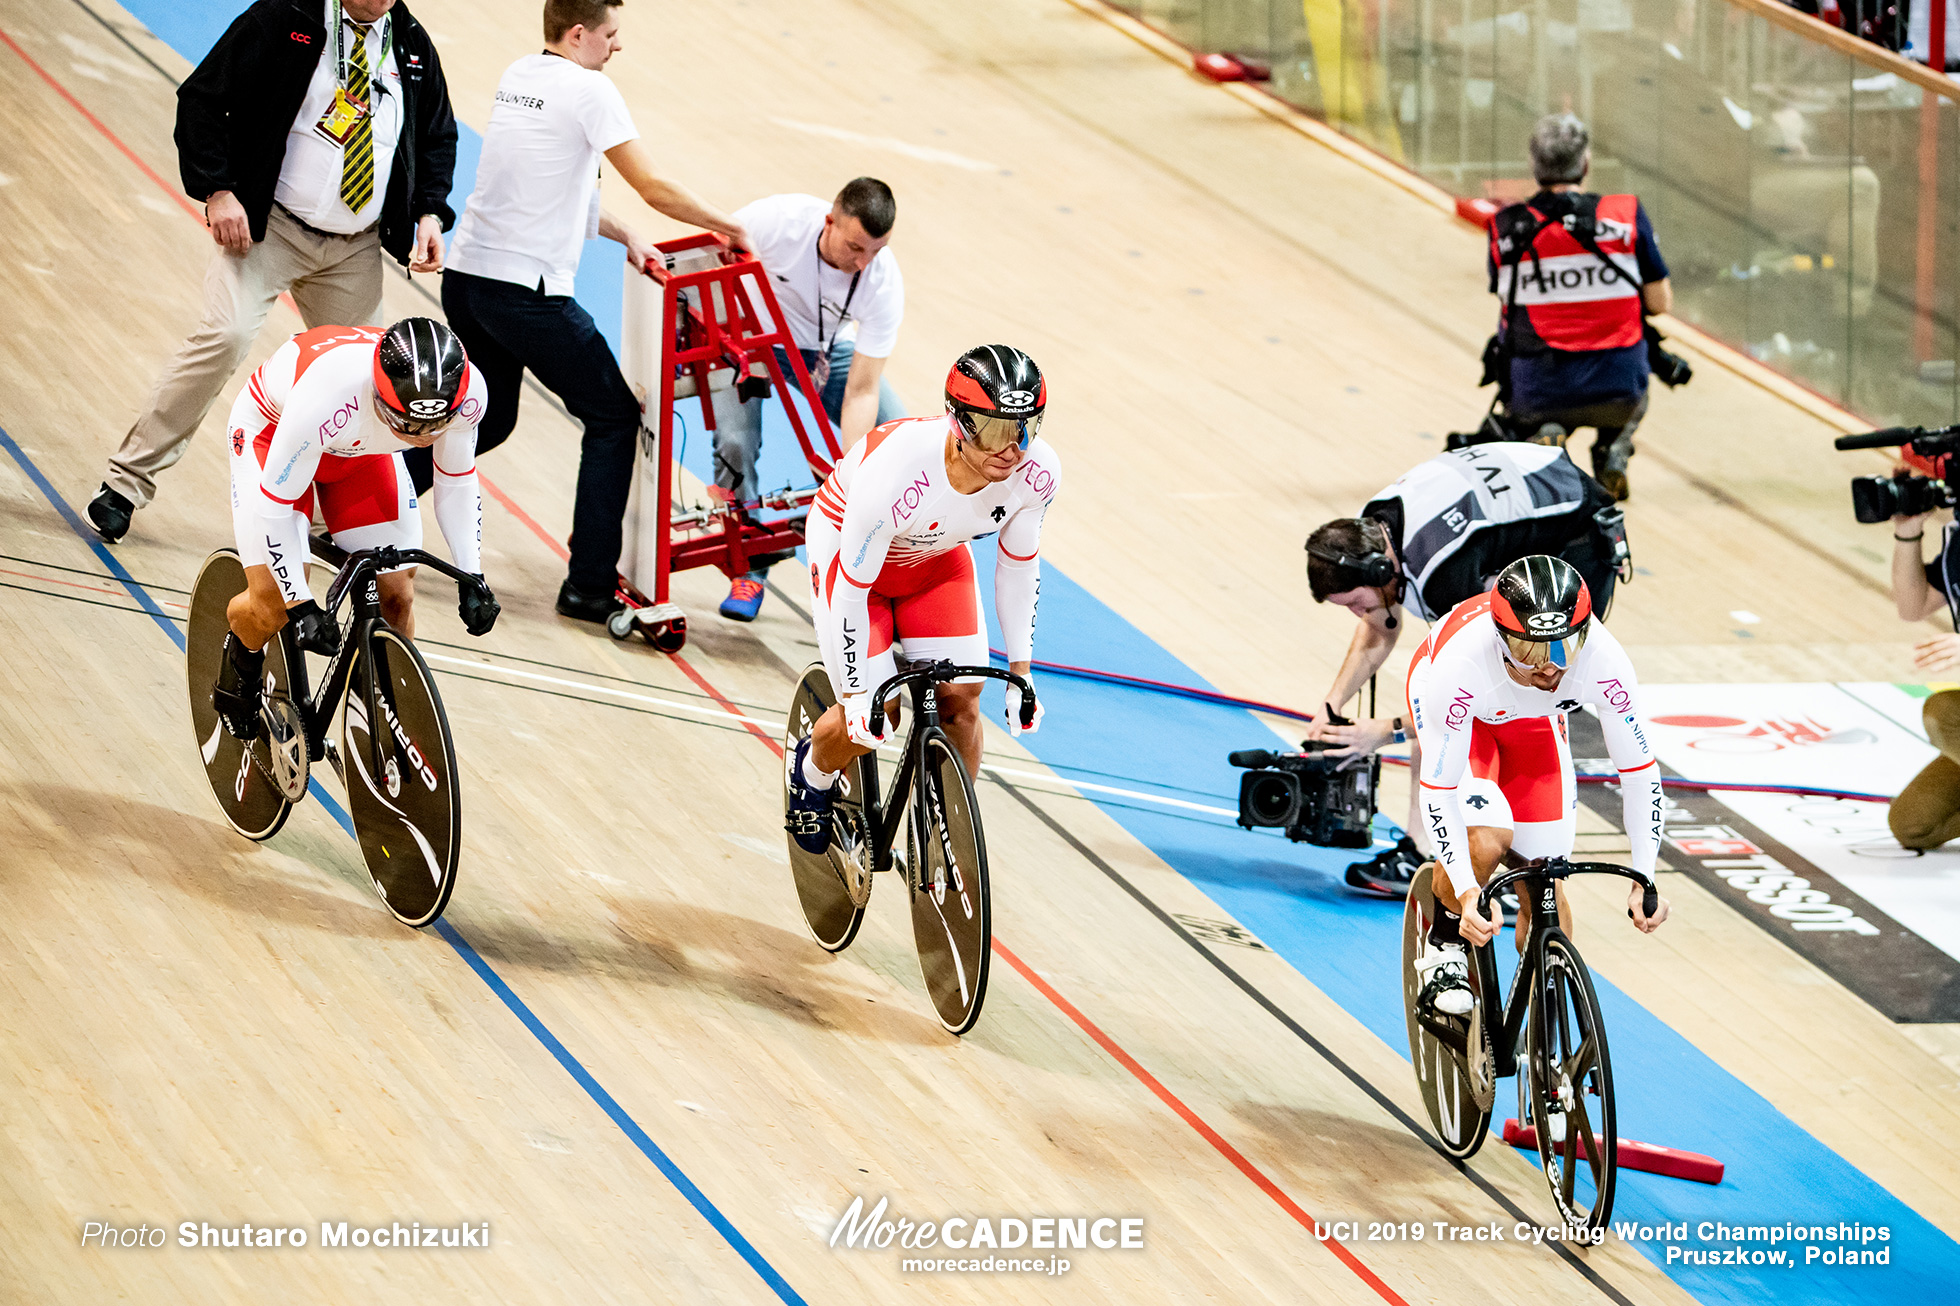 Men's Team Sprint / 2019 Track Cycling World Championships Pruszków, Poland